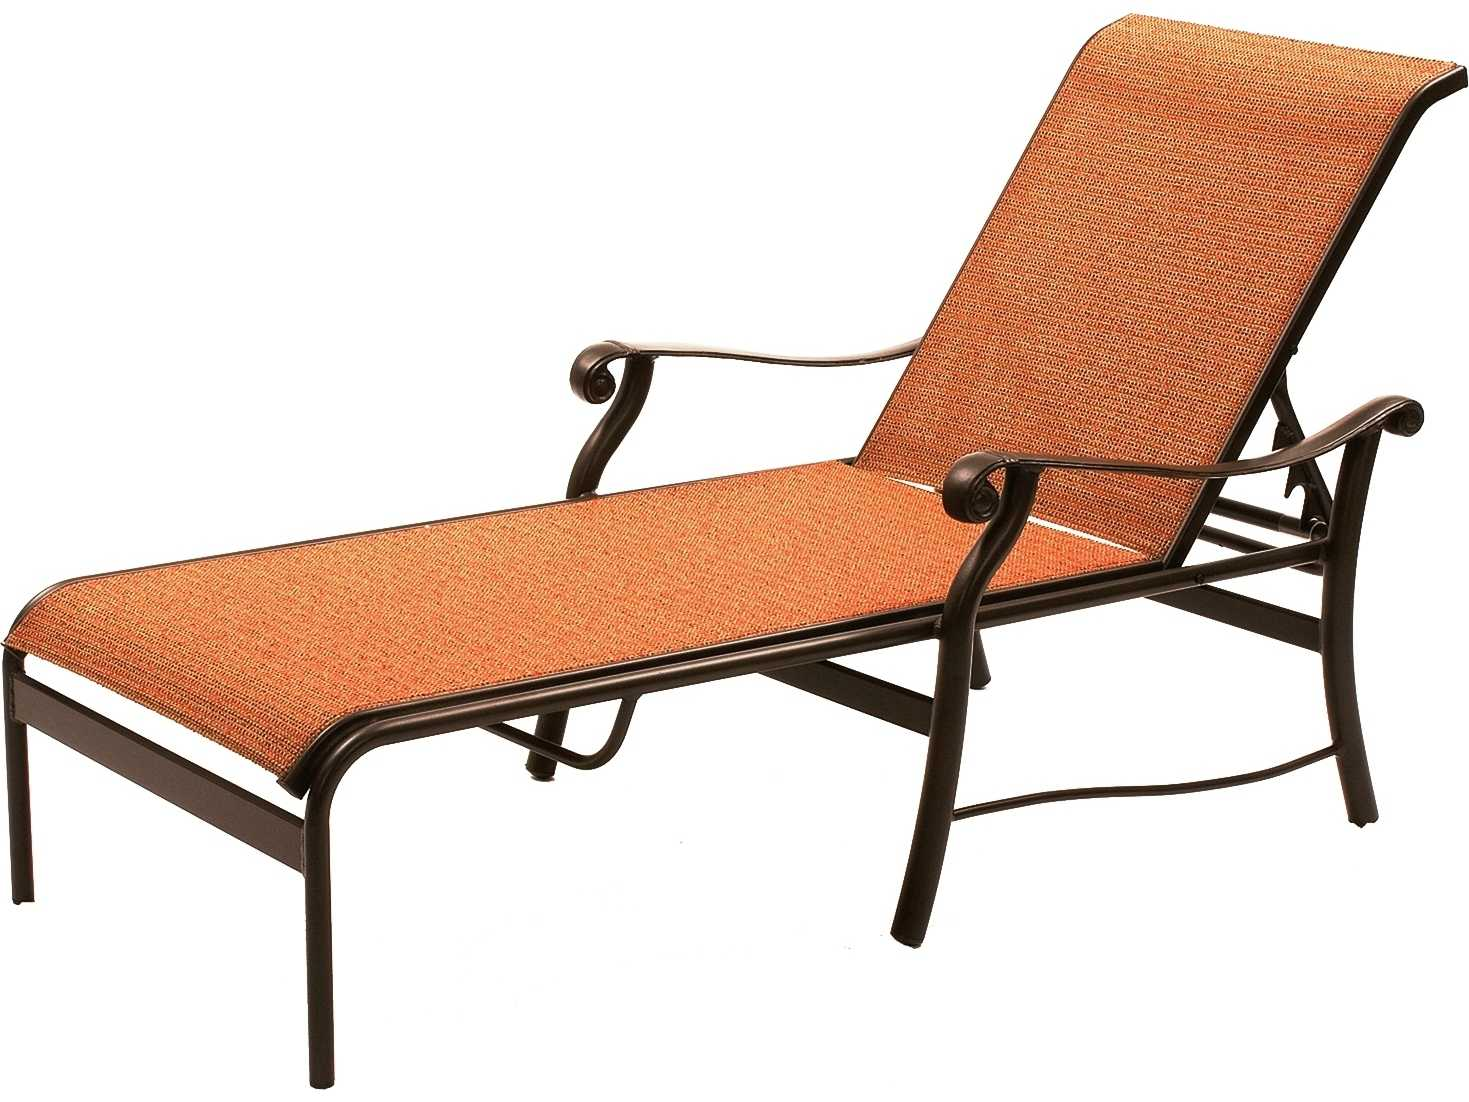 suncoast rendezvous sling cast aluminum heavy chaise lounge with arms 5863. Black Bedroom Furniture Sets. Home Design Ideas